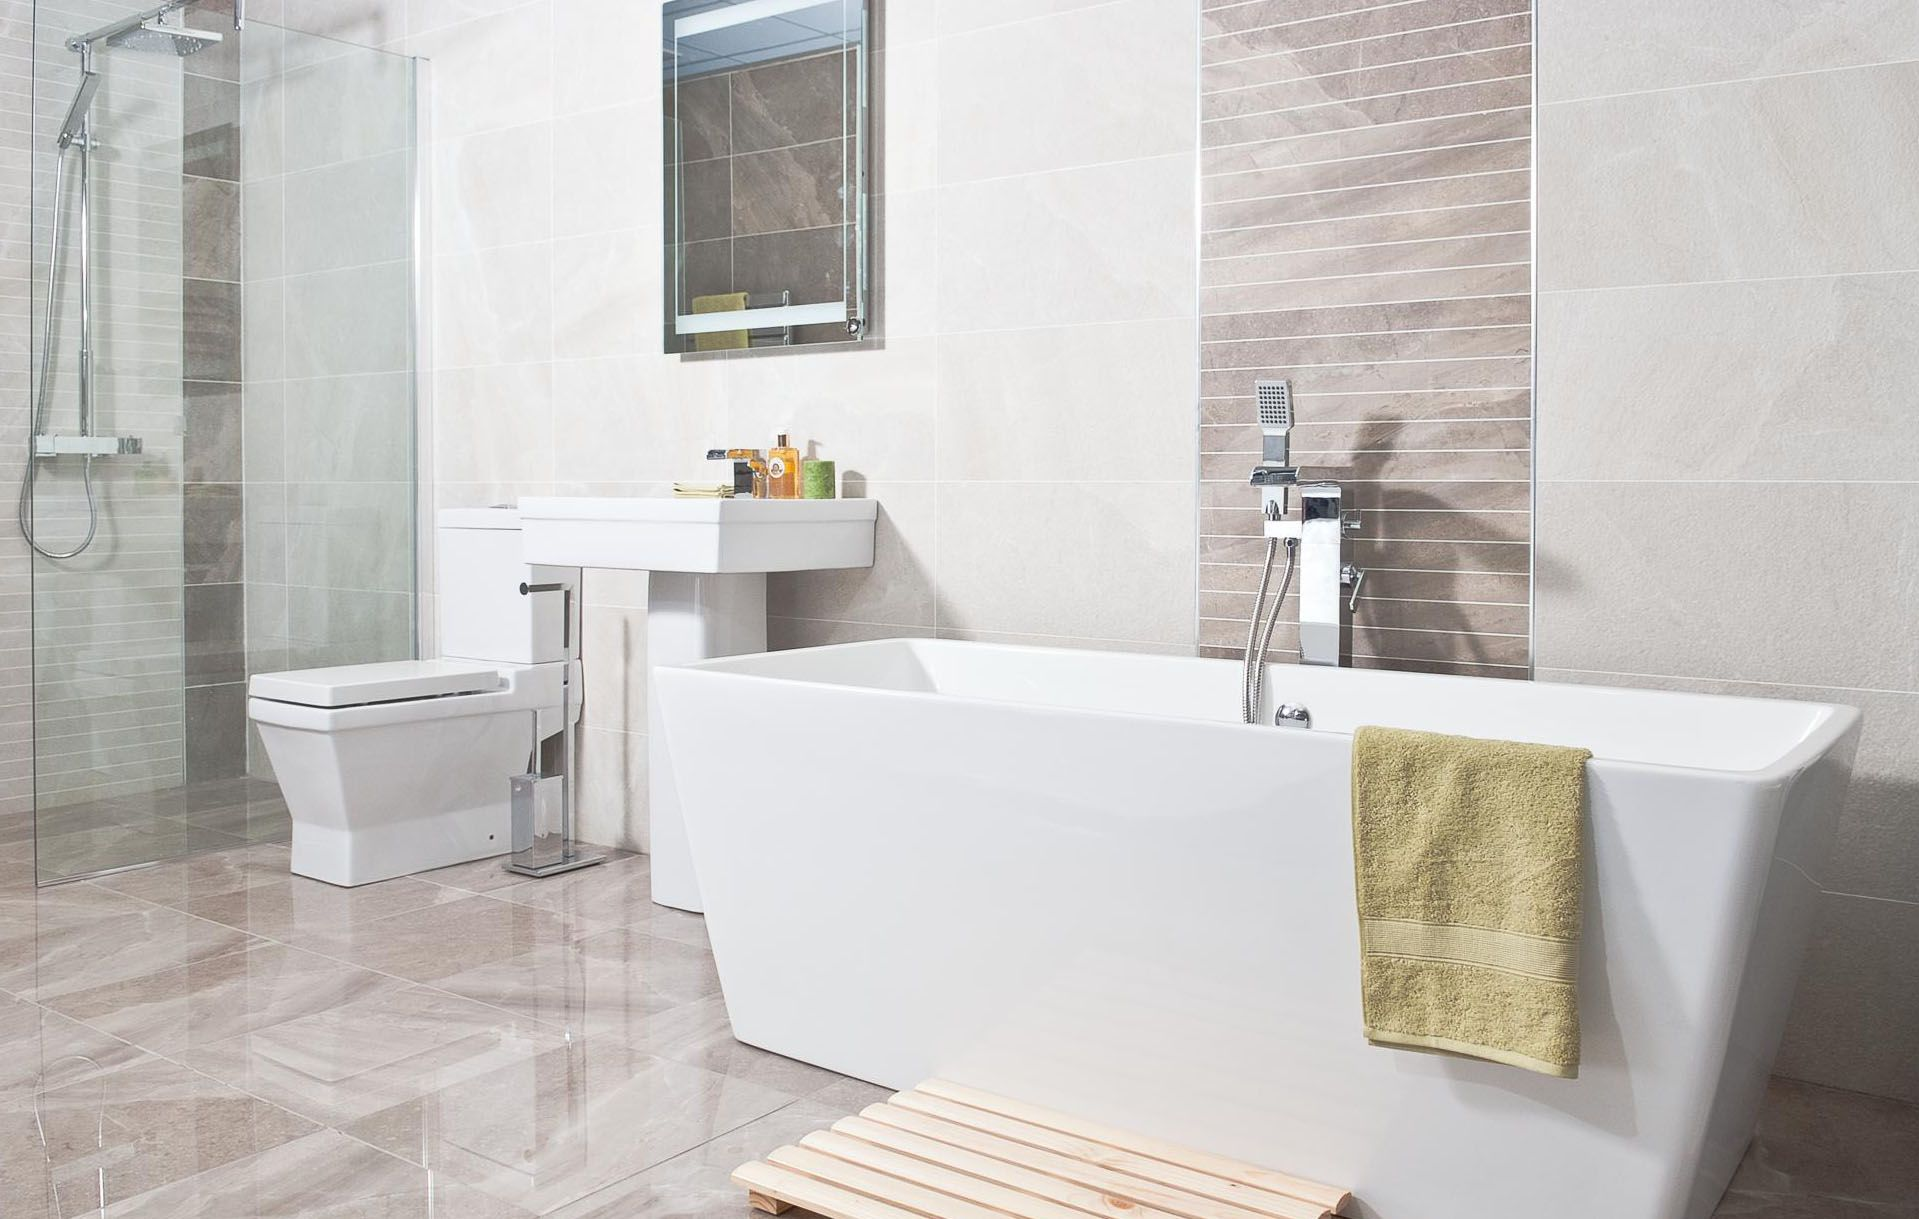 Bathrooms county durham Creating your perfect bathroom starts off ...